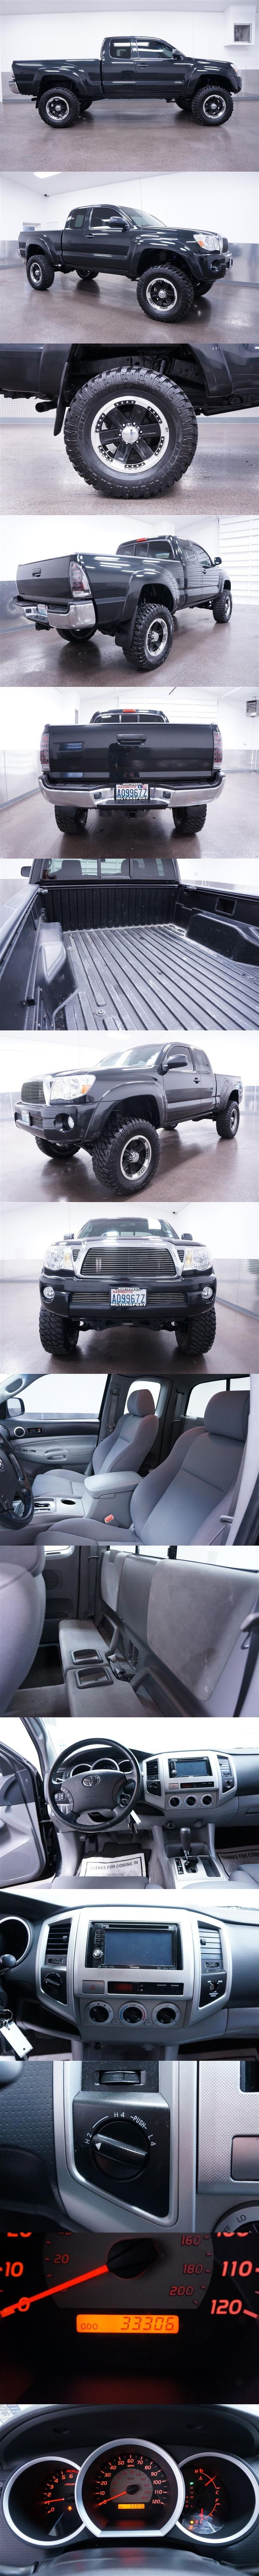 ☆ 2007 Toyota Tacoma 4x4 Lifted Truck/Trucks ☆ Nav & Low Miles!